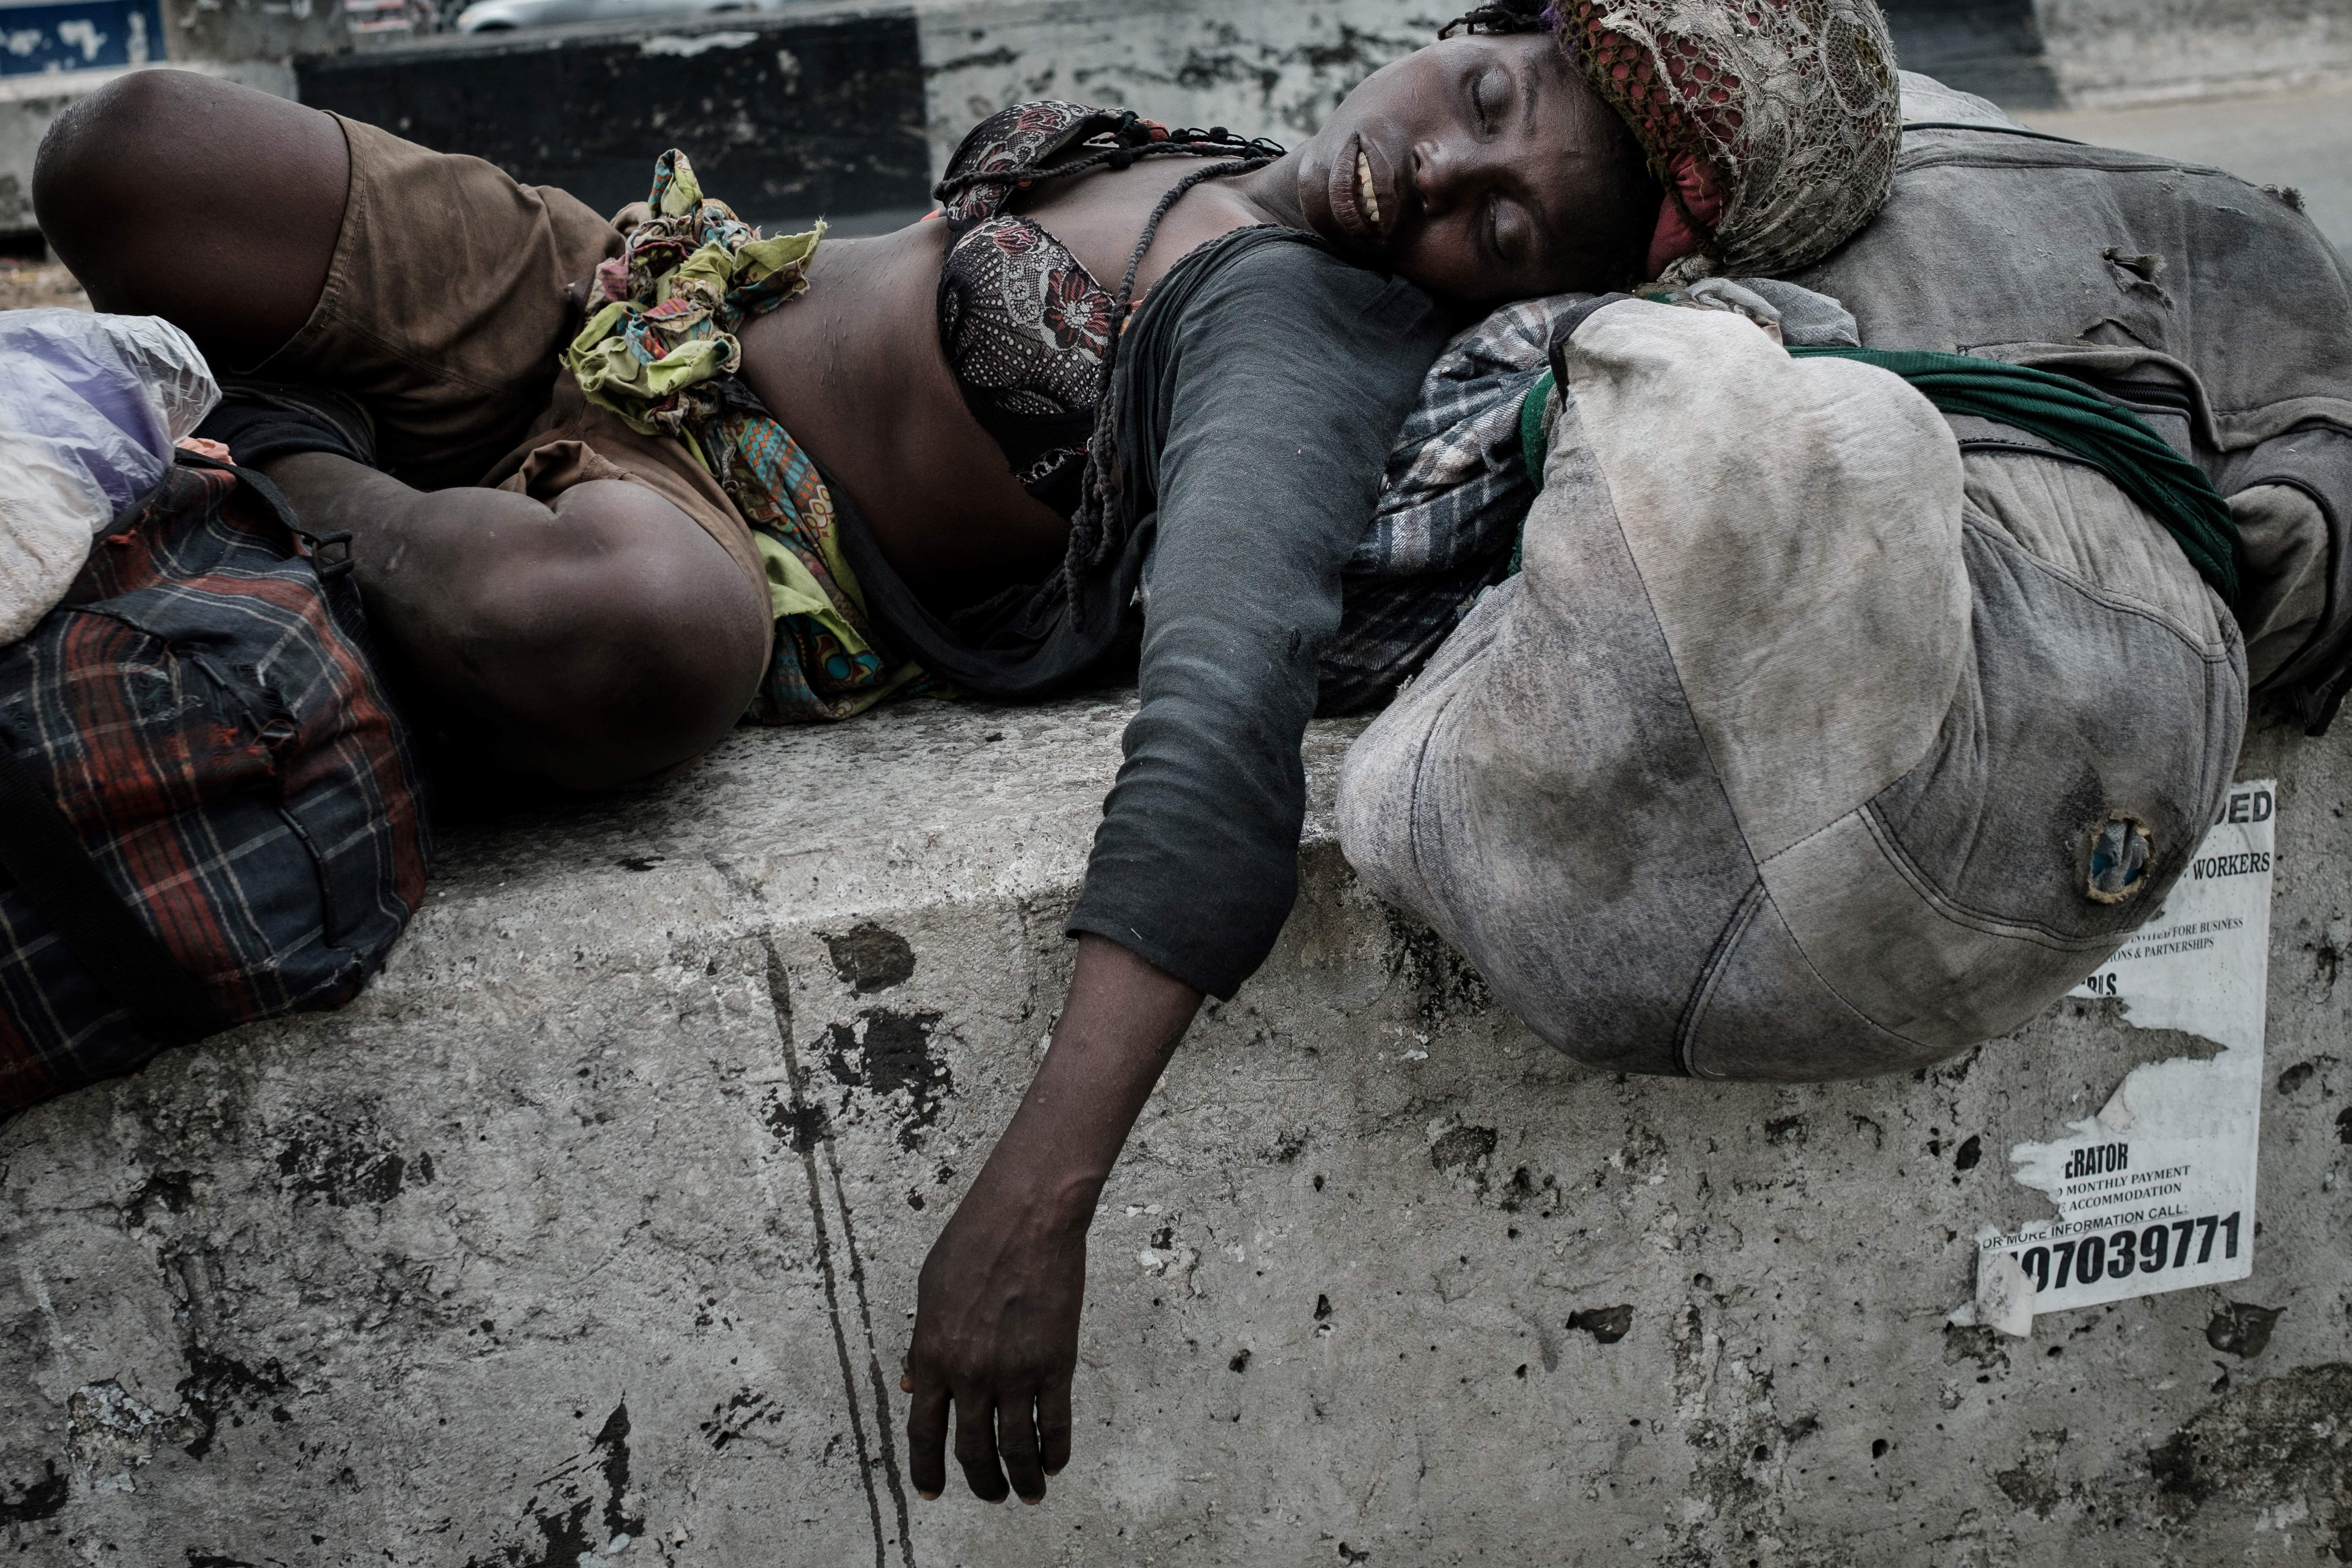 Welcome to the poverty capital of Nigeria - Stears Business